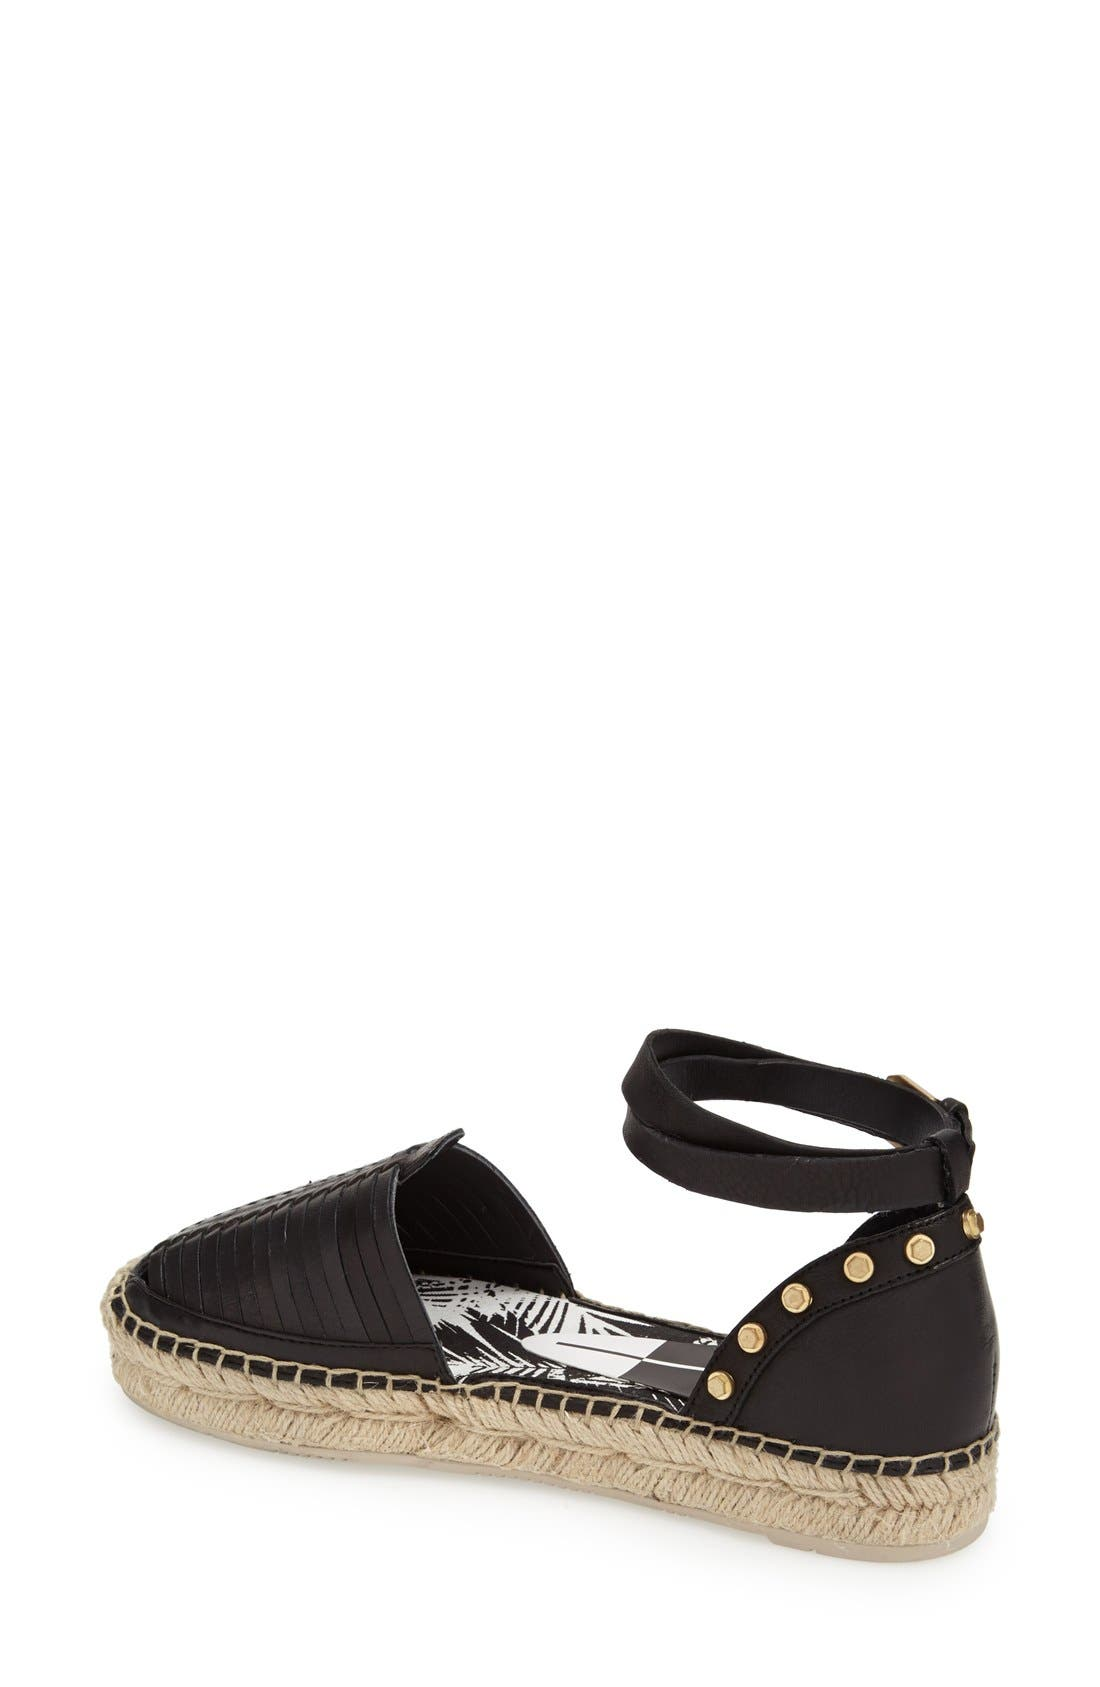 'Ceyla' Leather Ankle Strap Espadrille,                             Alternate thumbnail 4, color,                             001